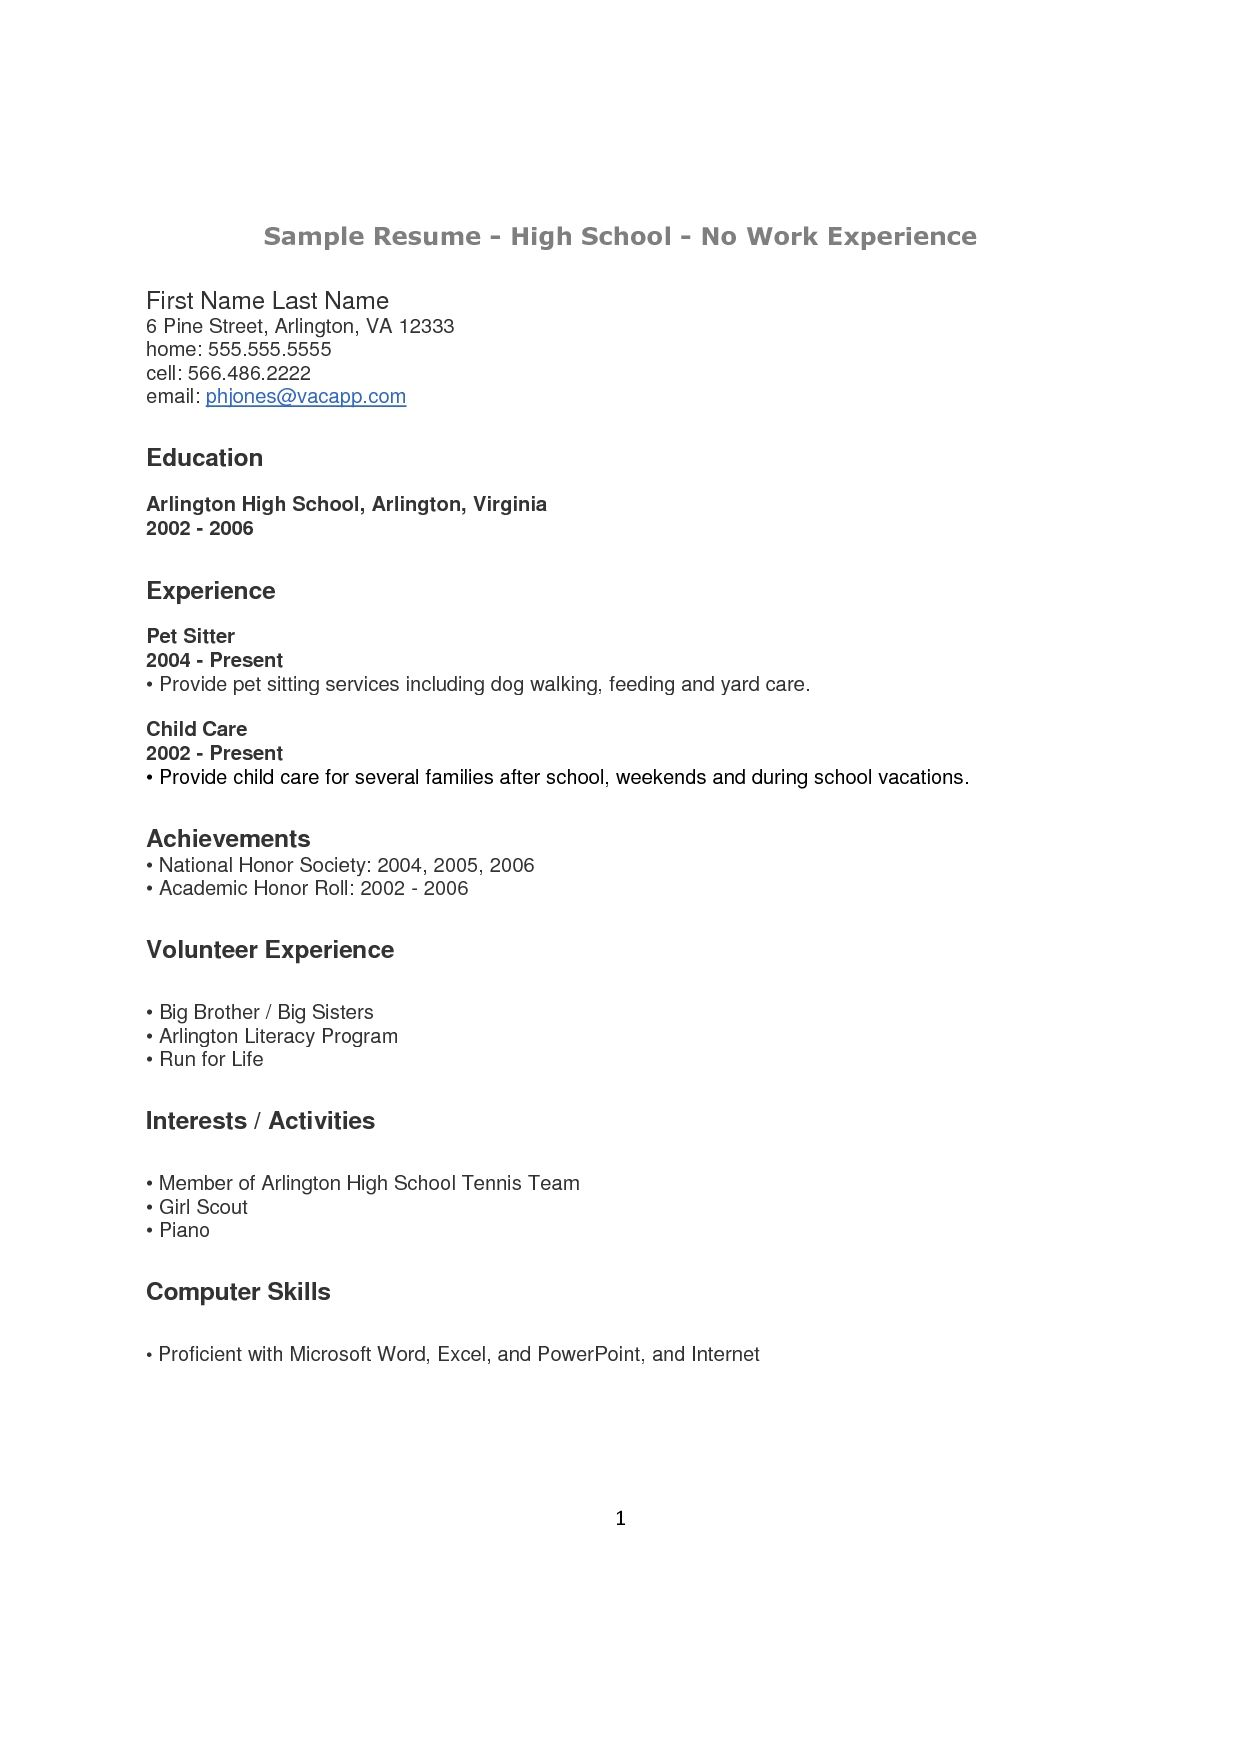 High School Student Resume With No Work Experience Examples Of Student  Resumes With No Work Experience